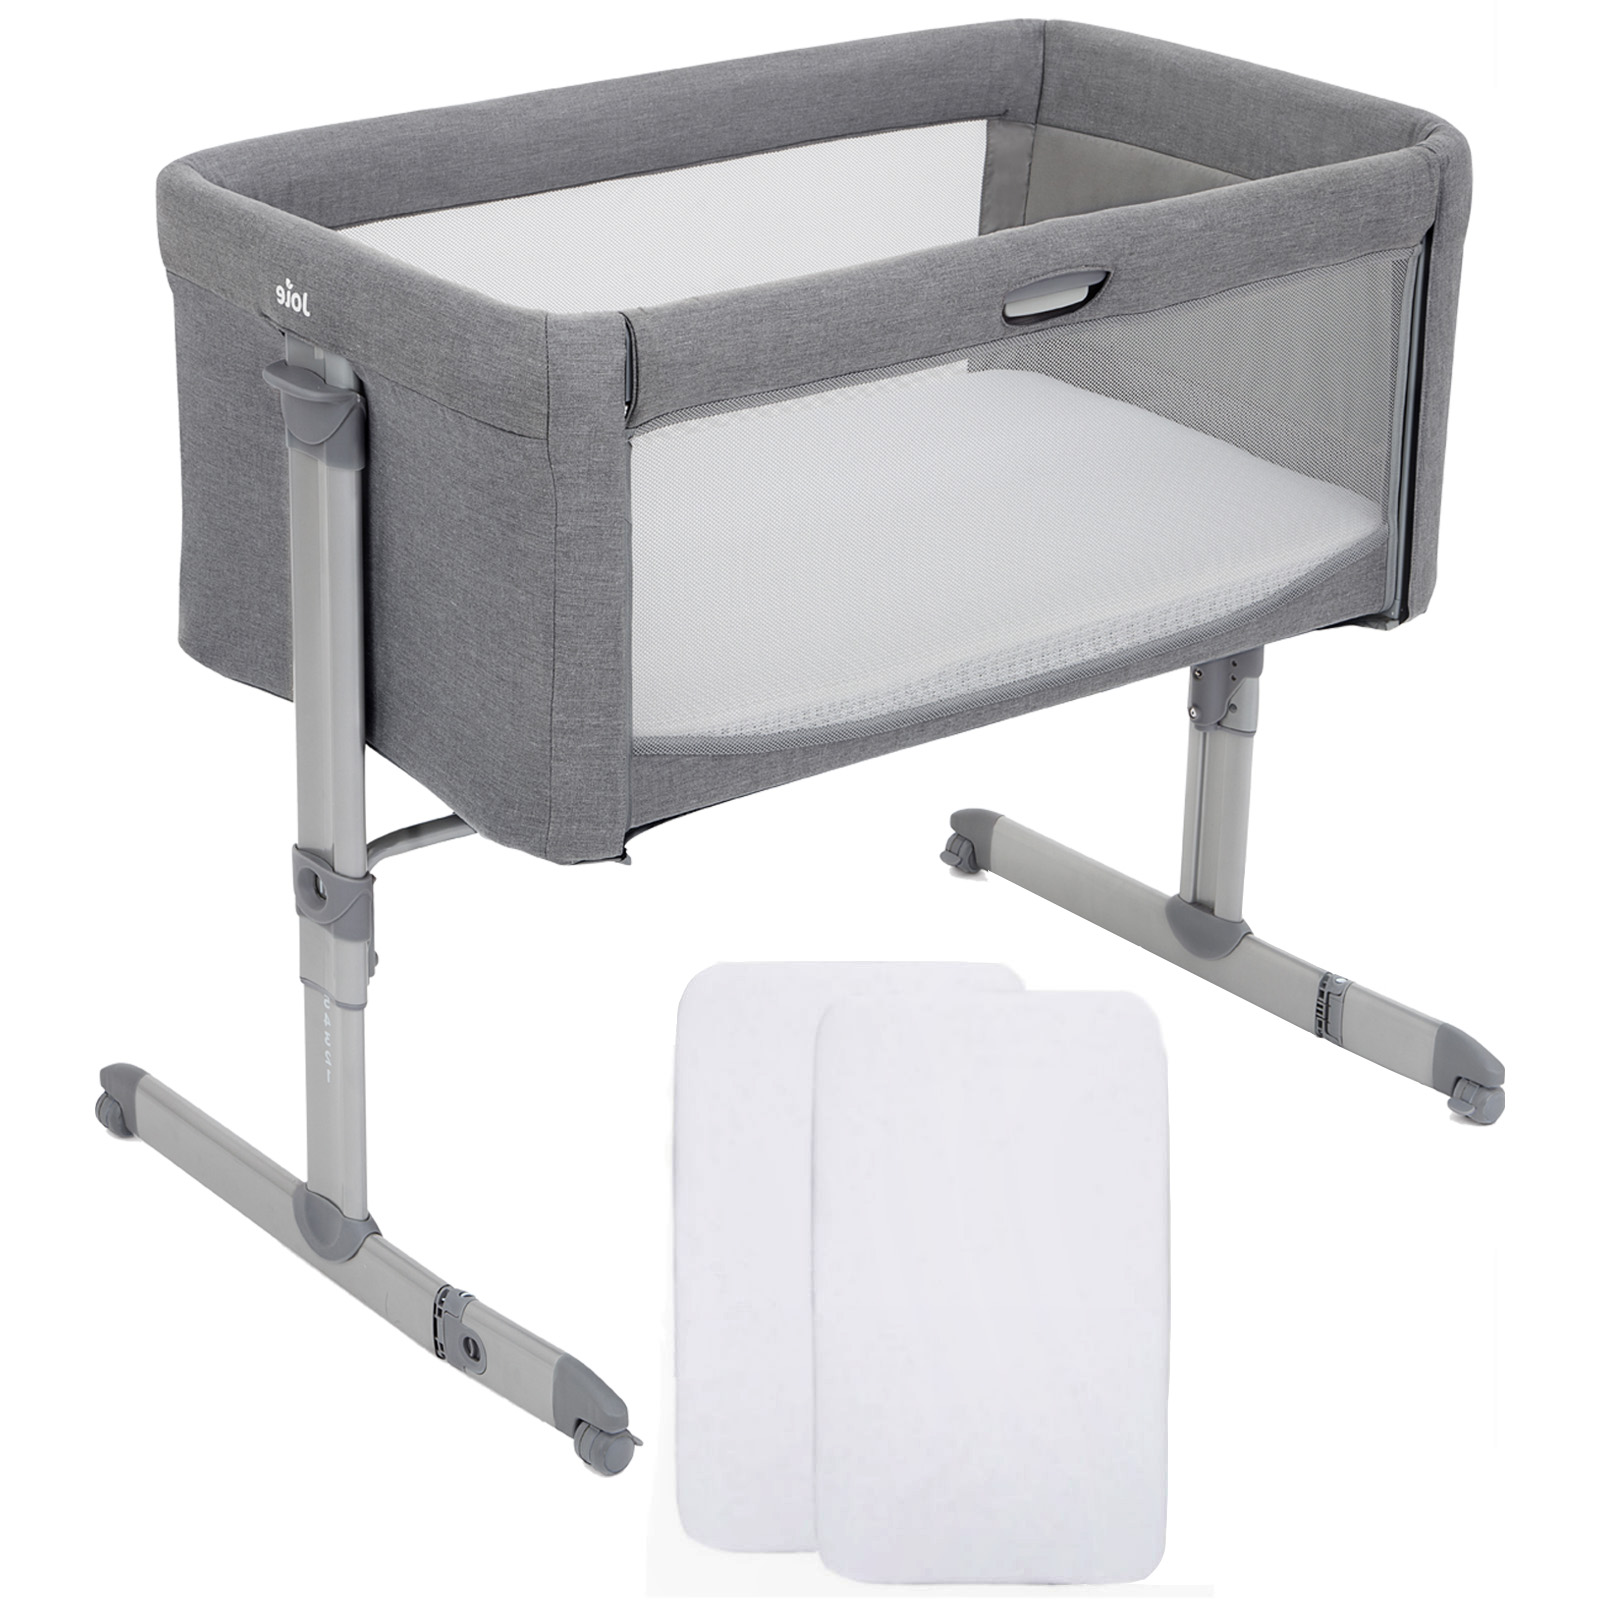 Joie Roomie Bedside Crib With 2 Fitted Sheets Grey Flannel Buy At Online4baby